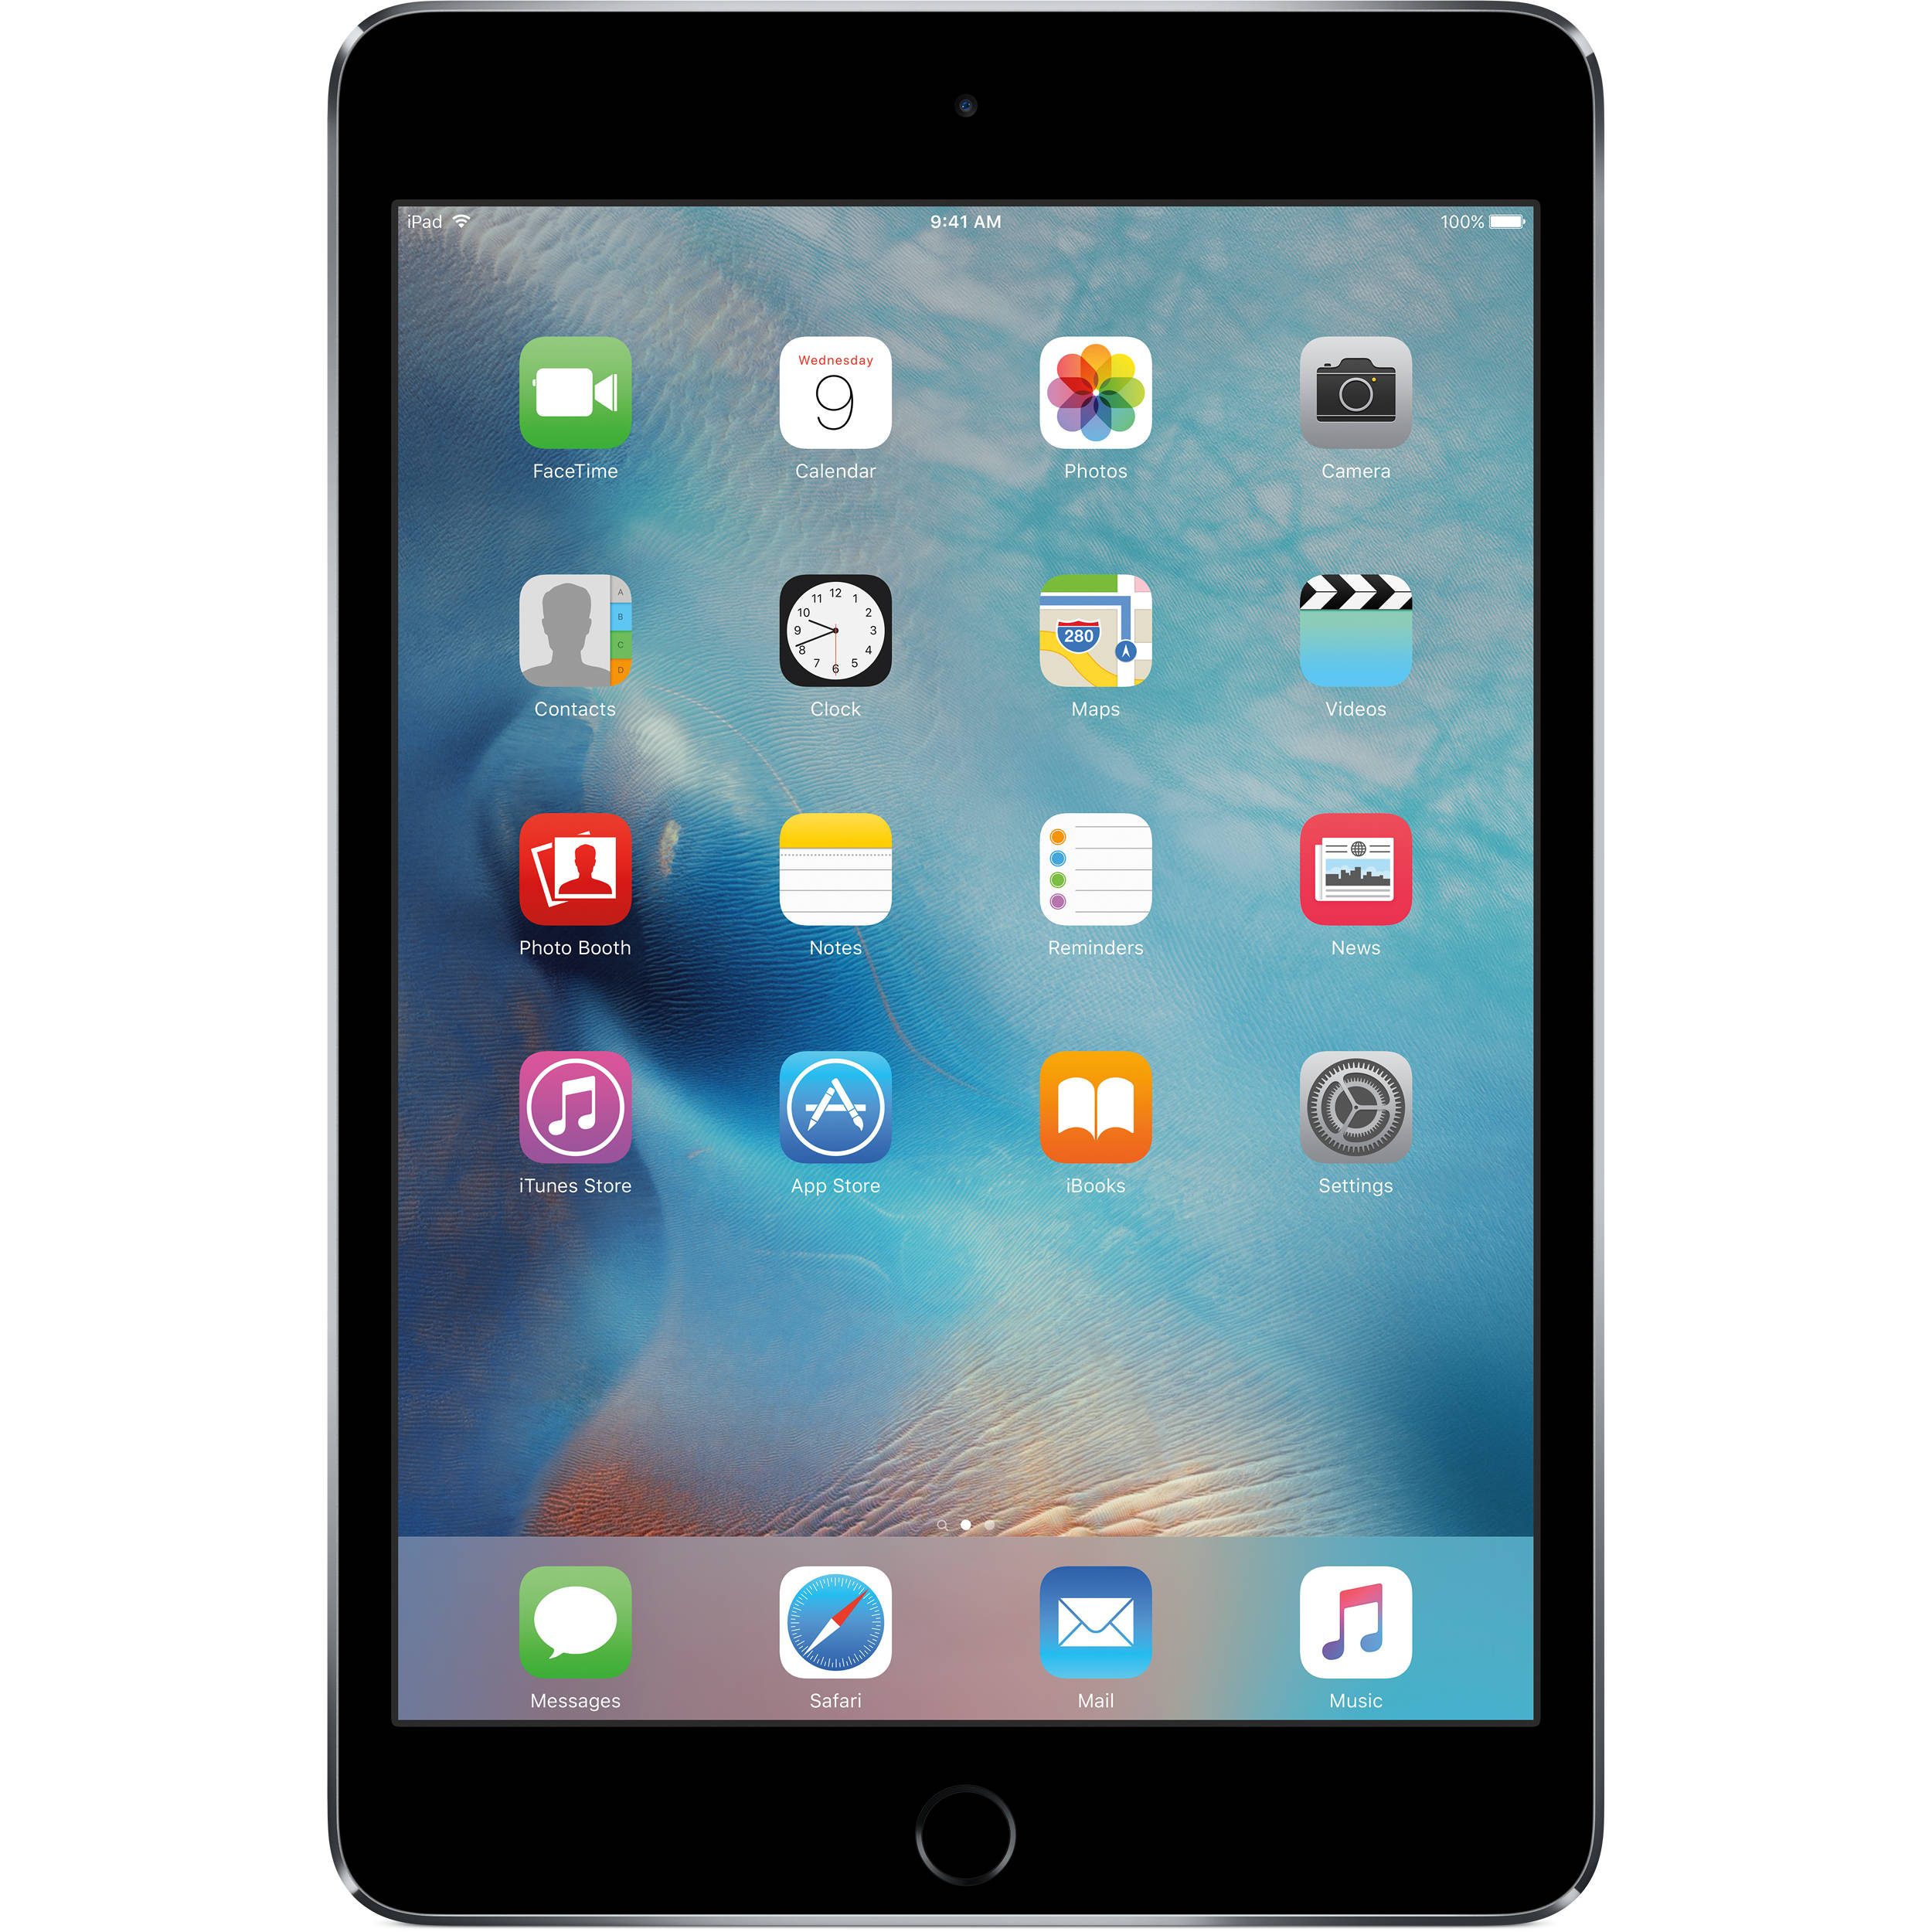 AppleiPad mini 4 128GB Space Gray BOX ONLY with Stickers and Sim Tool.